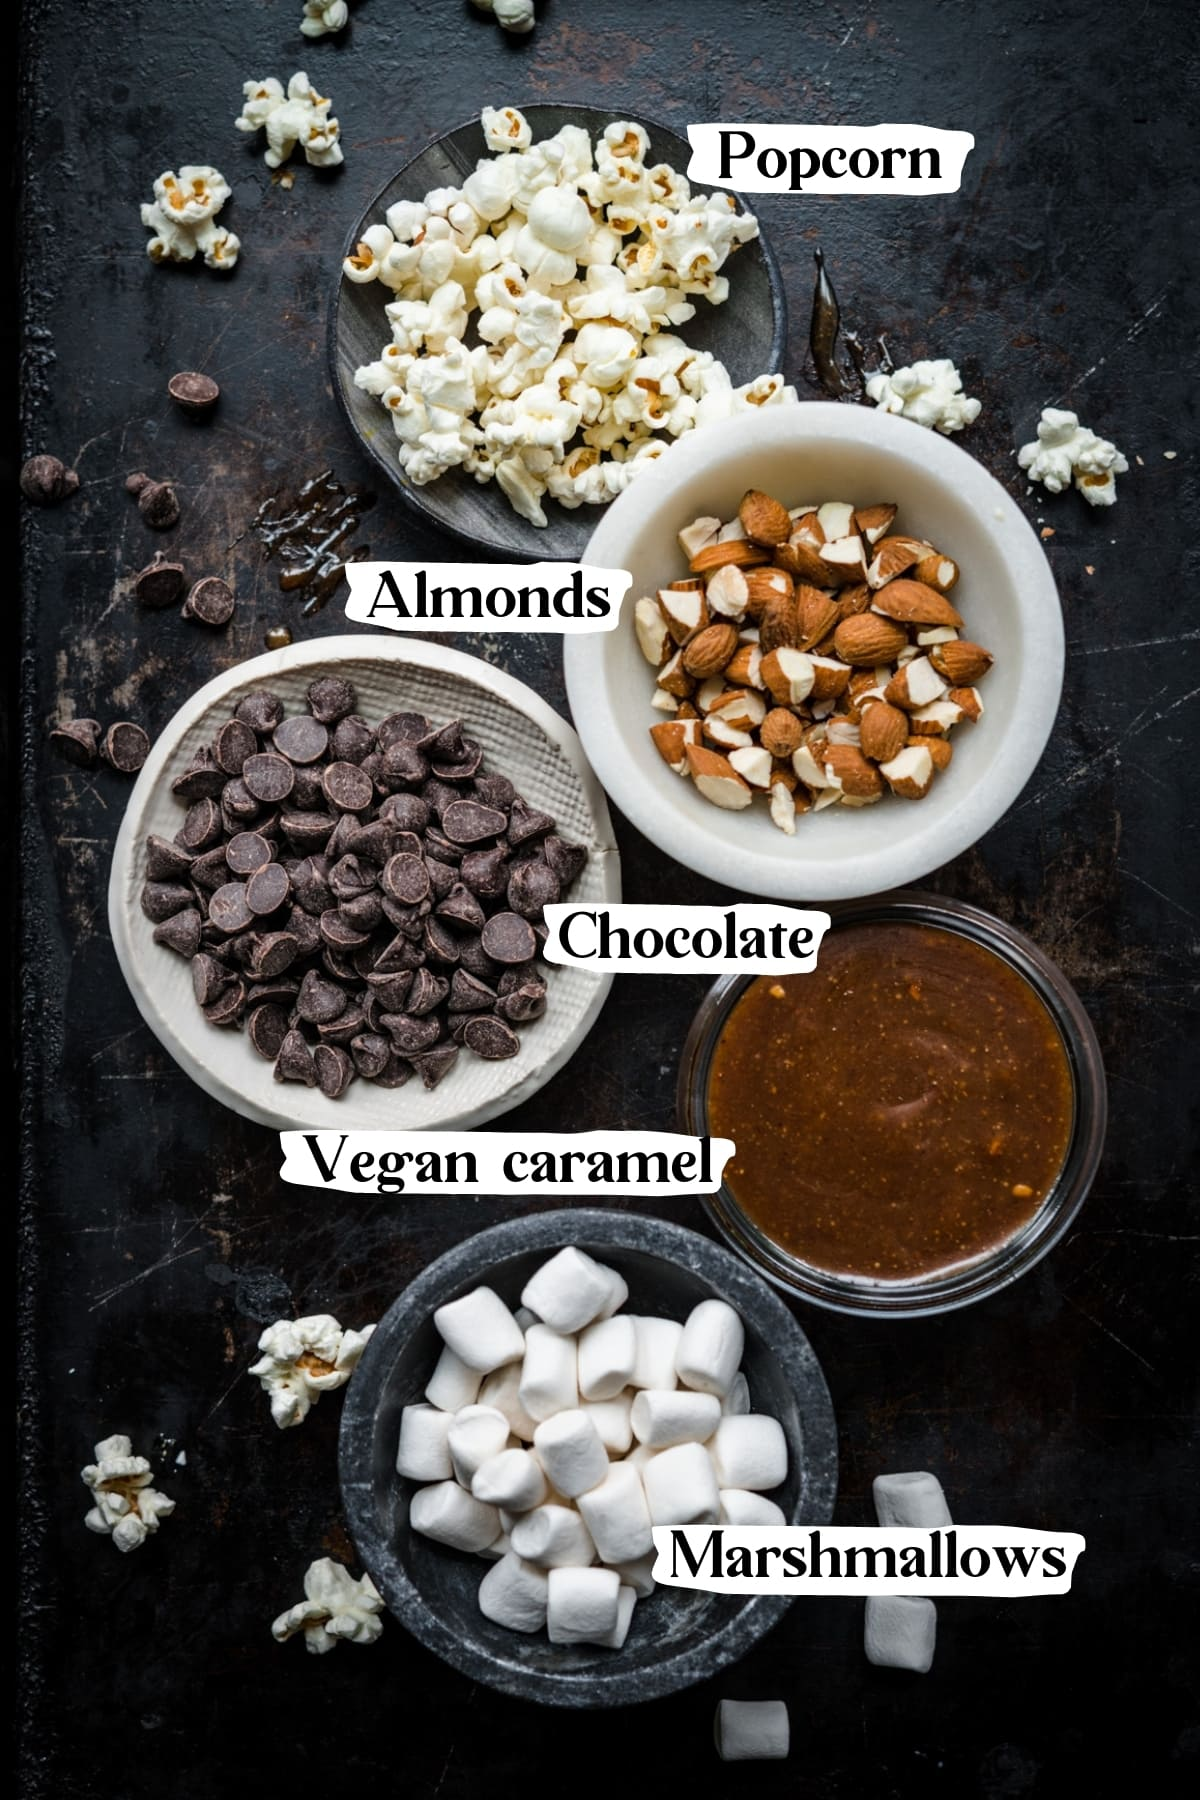 overhead view of popcorn, almonds, chocolate chips, caramel sauce and marshmallows in separate small bowls.